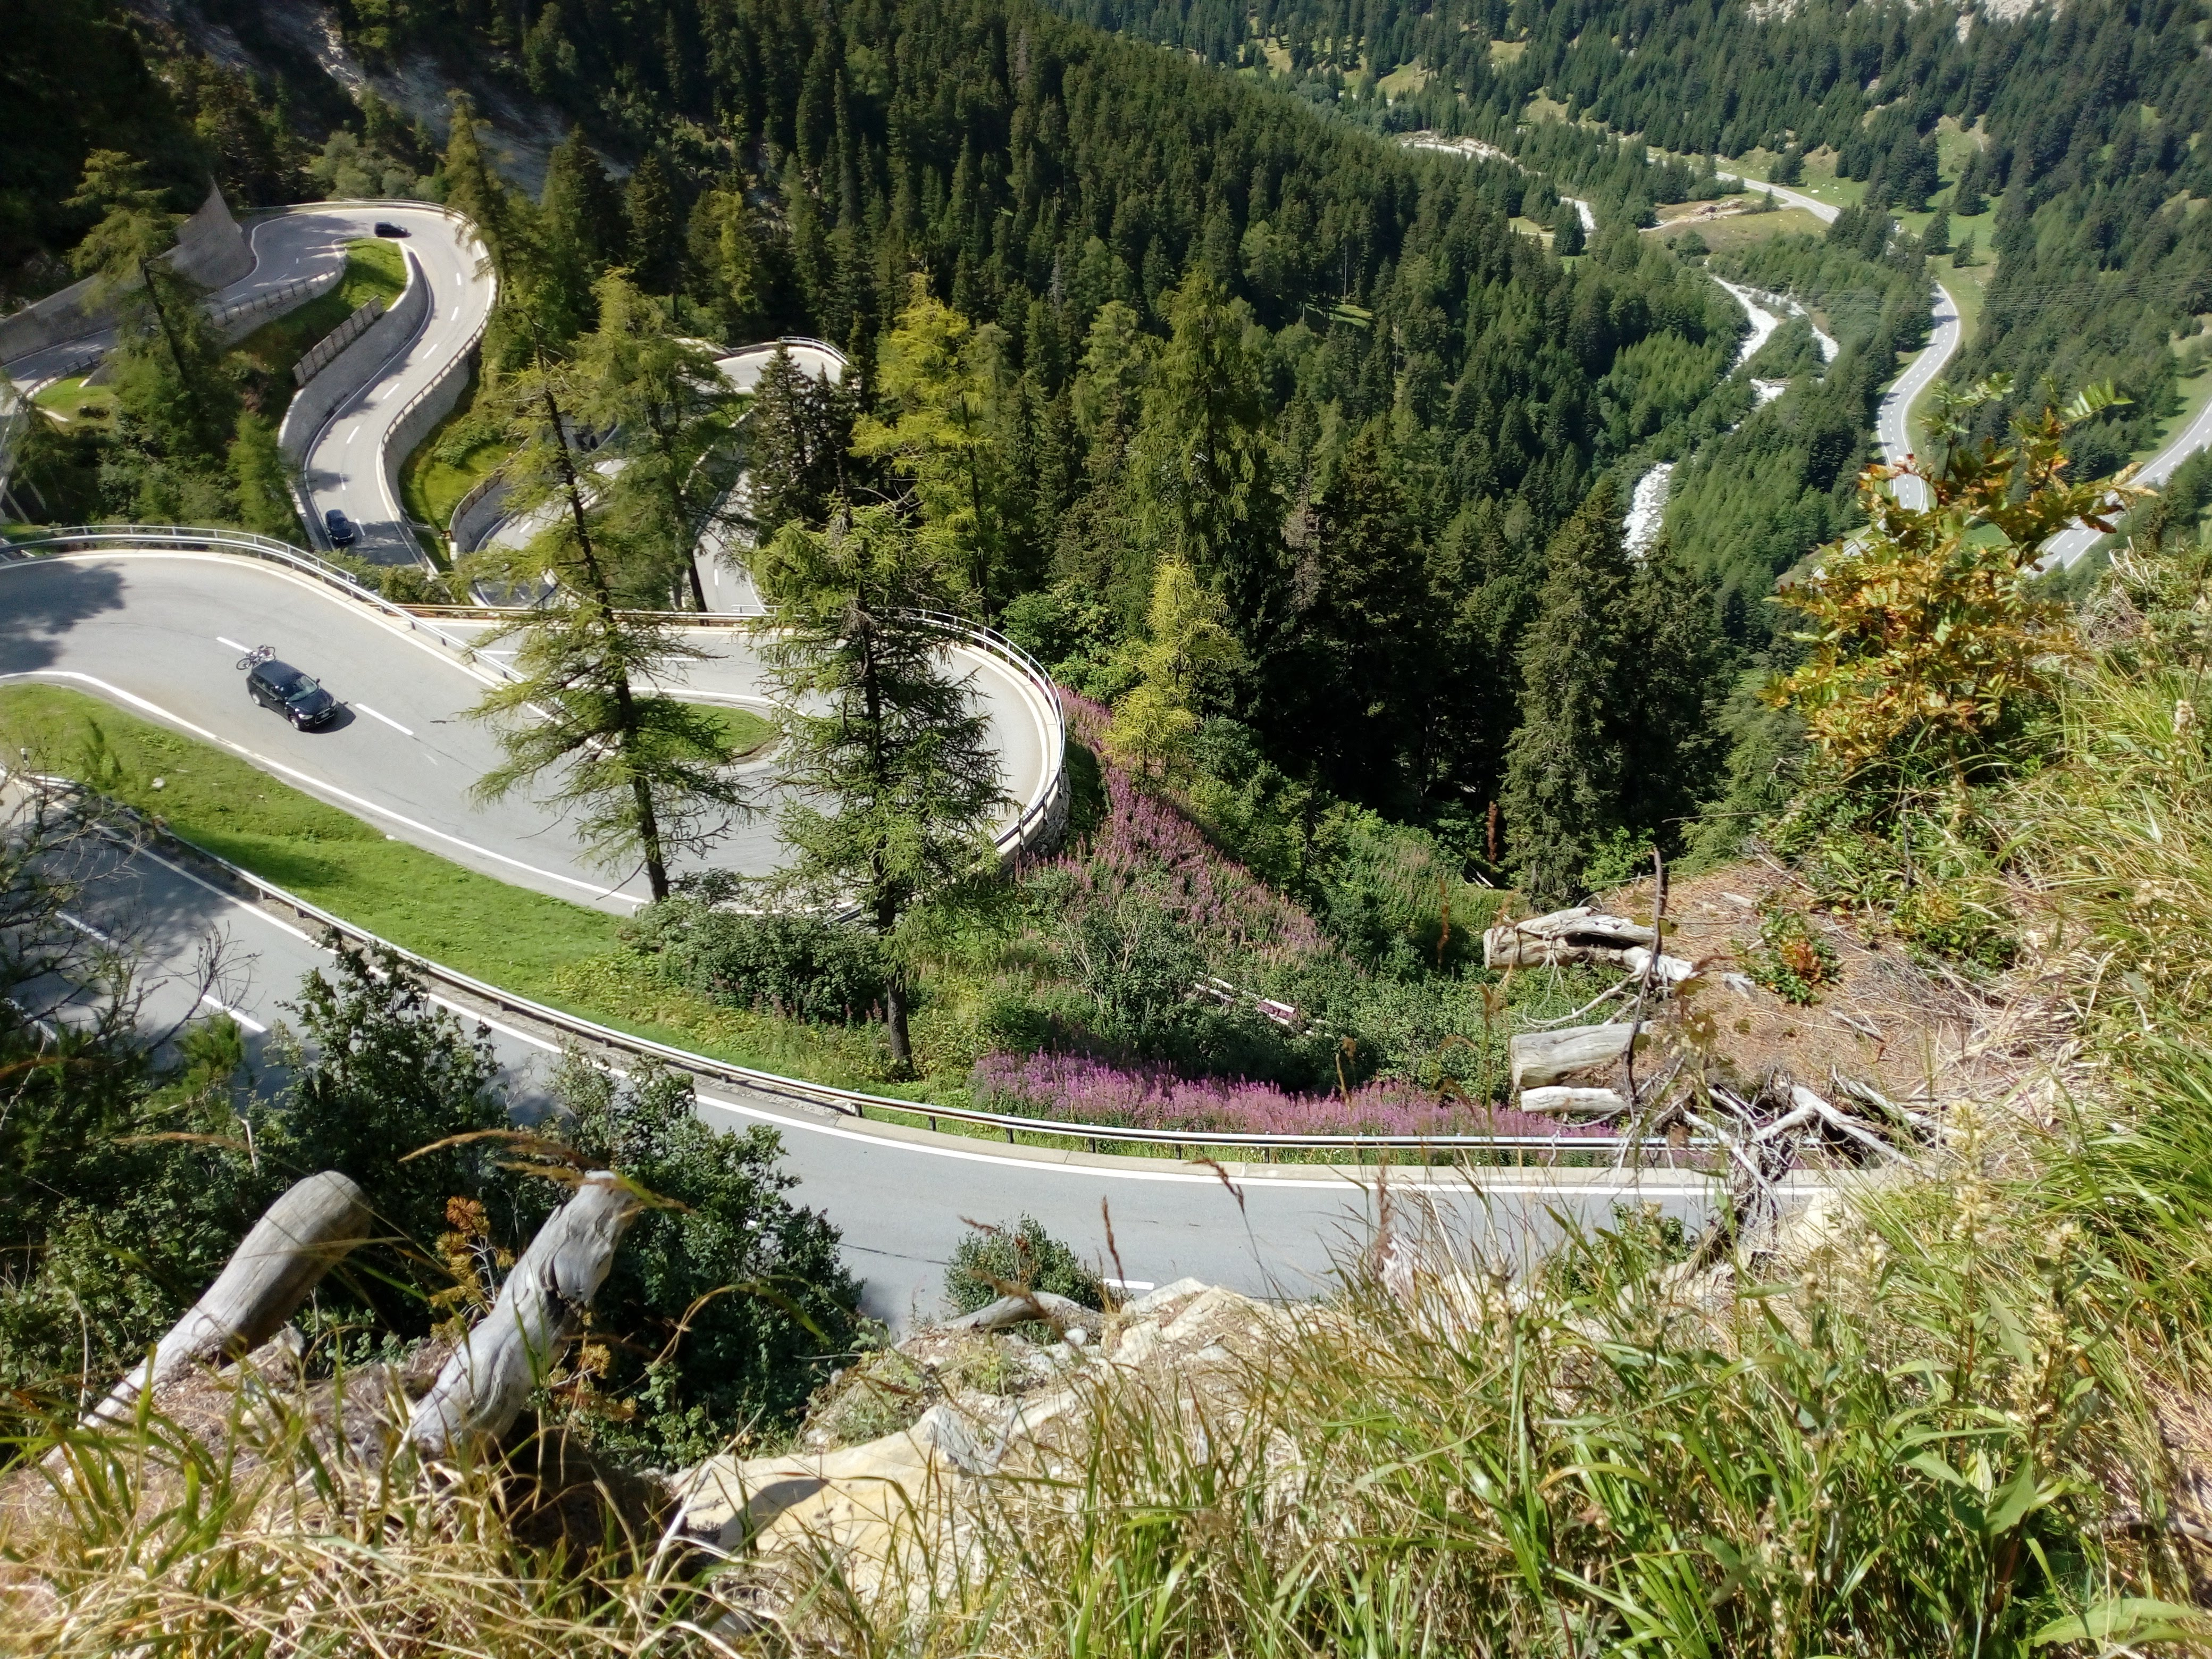 The road of the alpine pass Maloja winds up and down from and to Italy